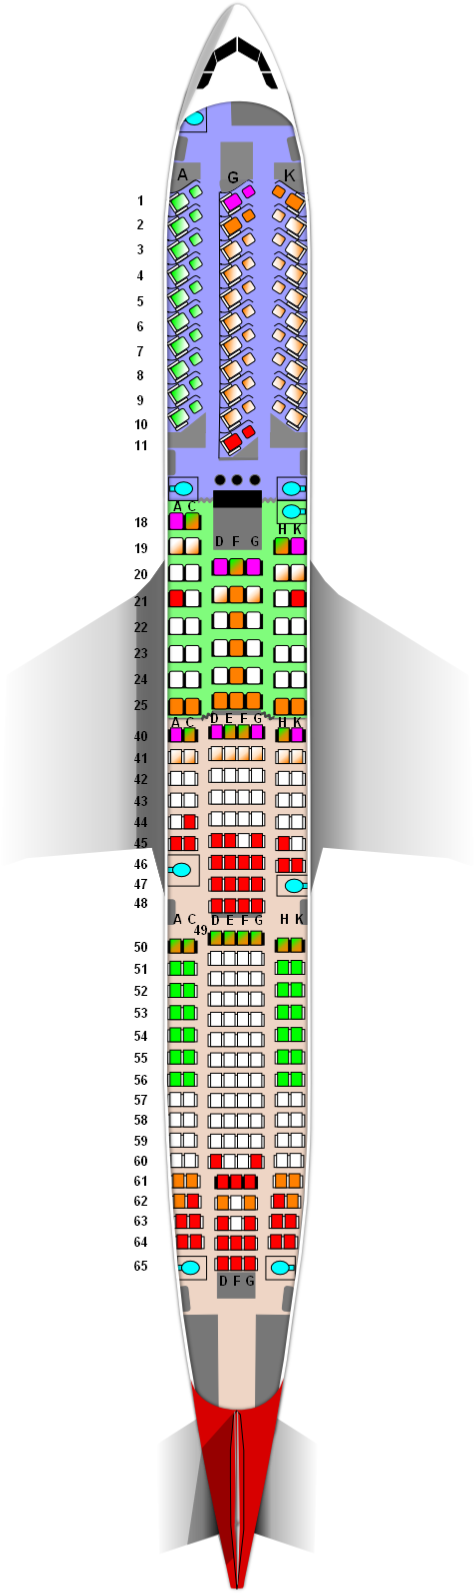 Virgin Atlantic A330-300 31J/48W/185Y Seat Map